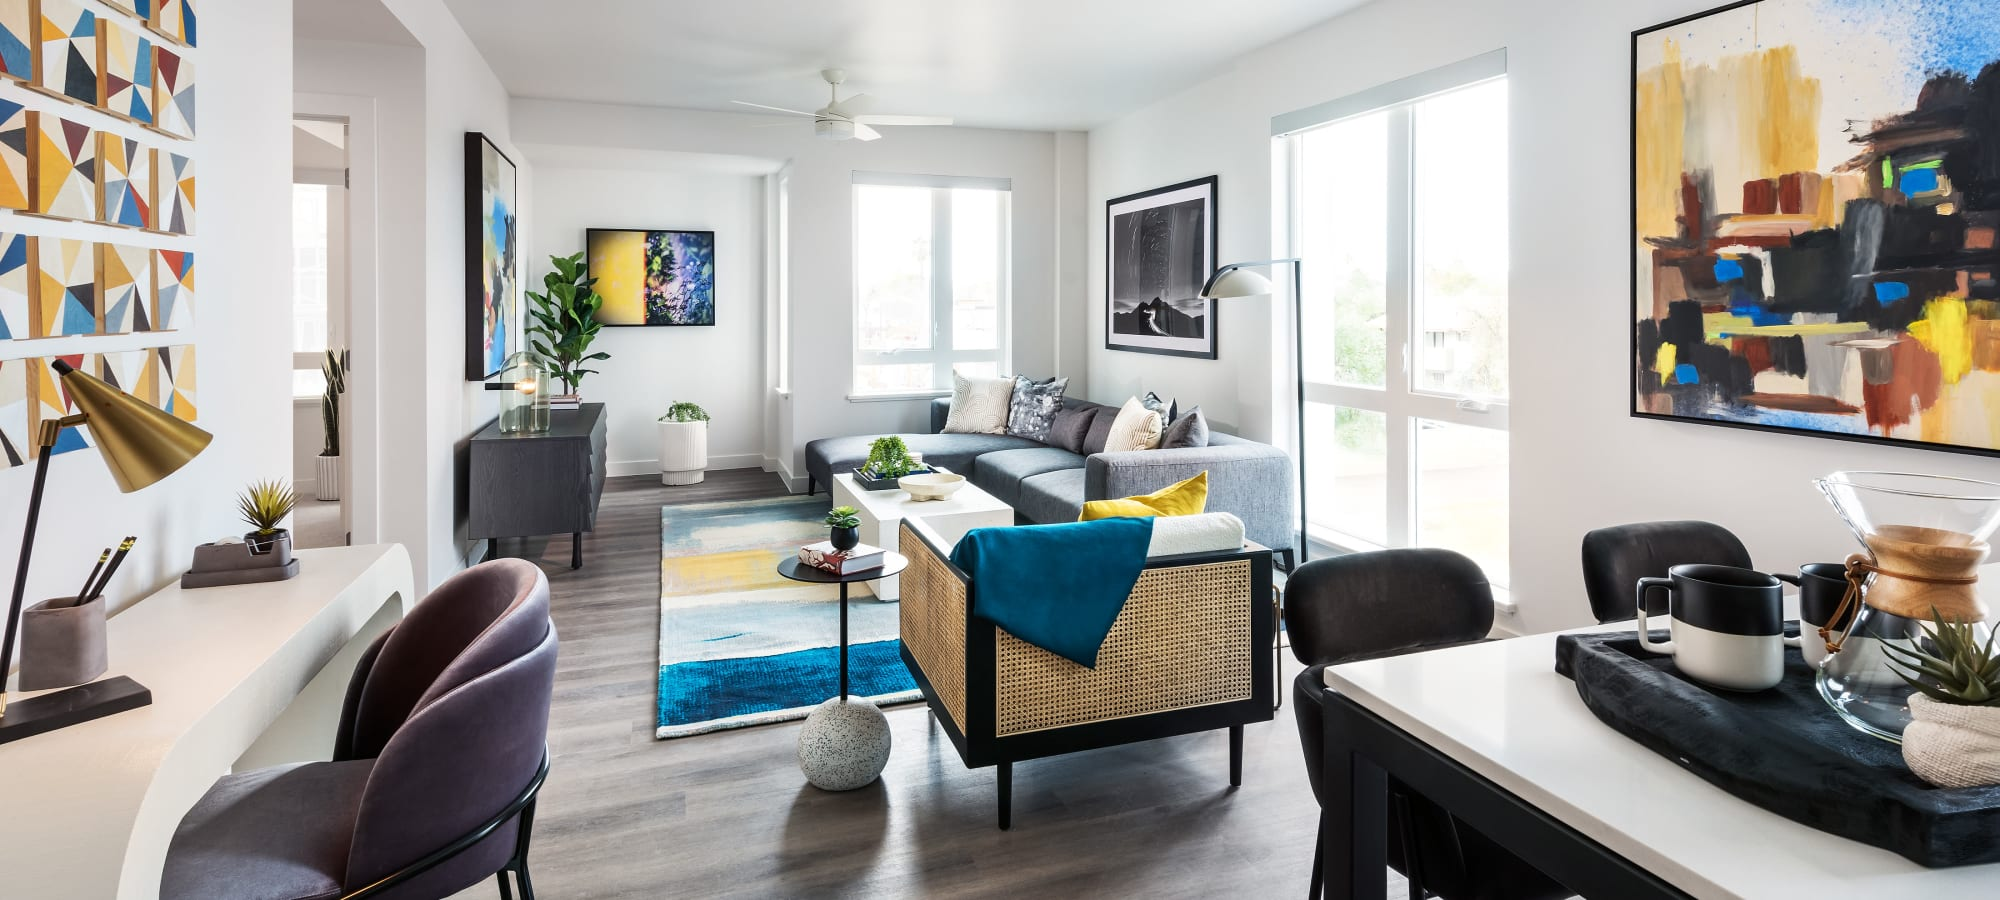 View of Living Room from Entry Hall at Hudson on Farmer in Tempe, Arizona